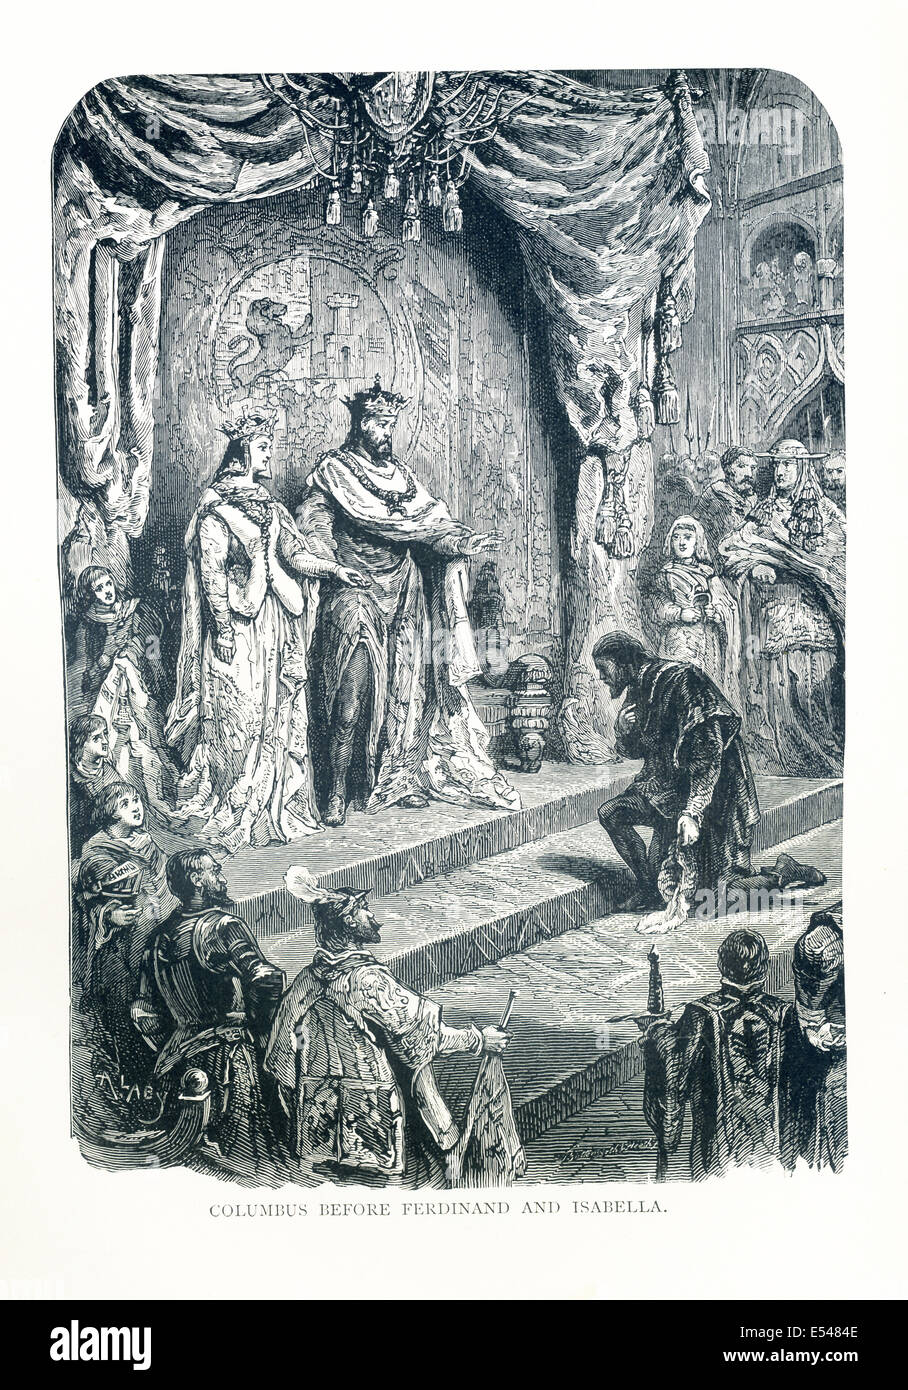 Columbus is shown presenting his proposal to King Ferdinand and Queen Isabella at Alcazar Castle in Cordoba in January - Stock Image